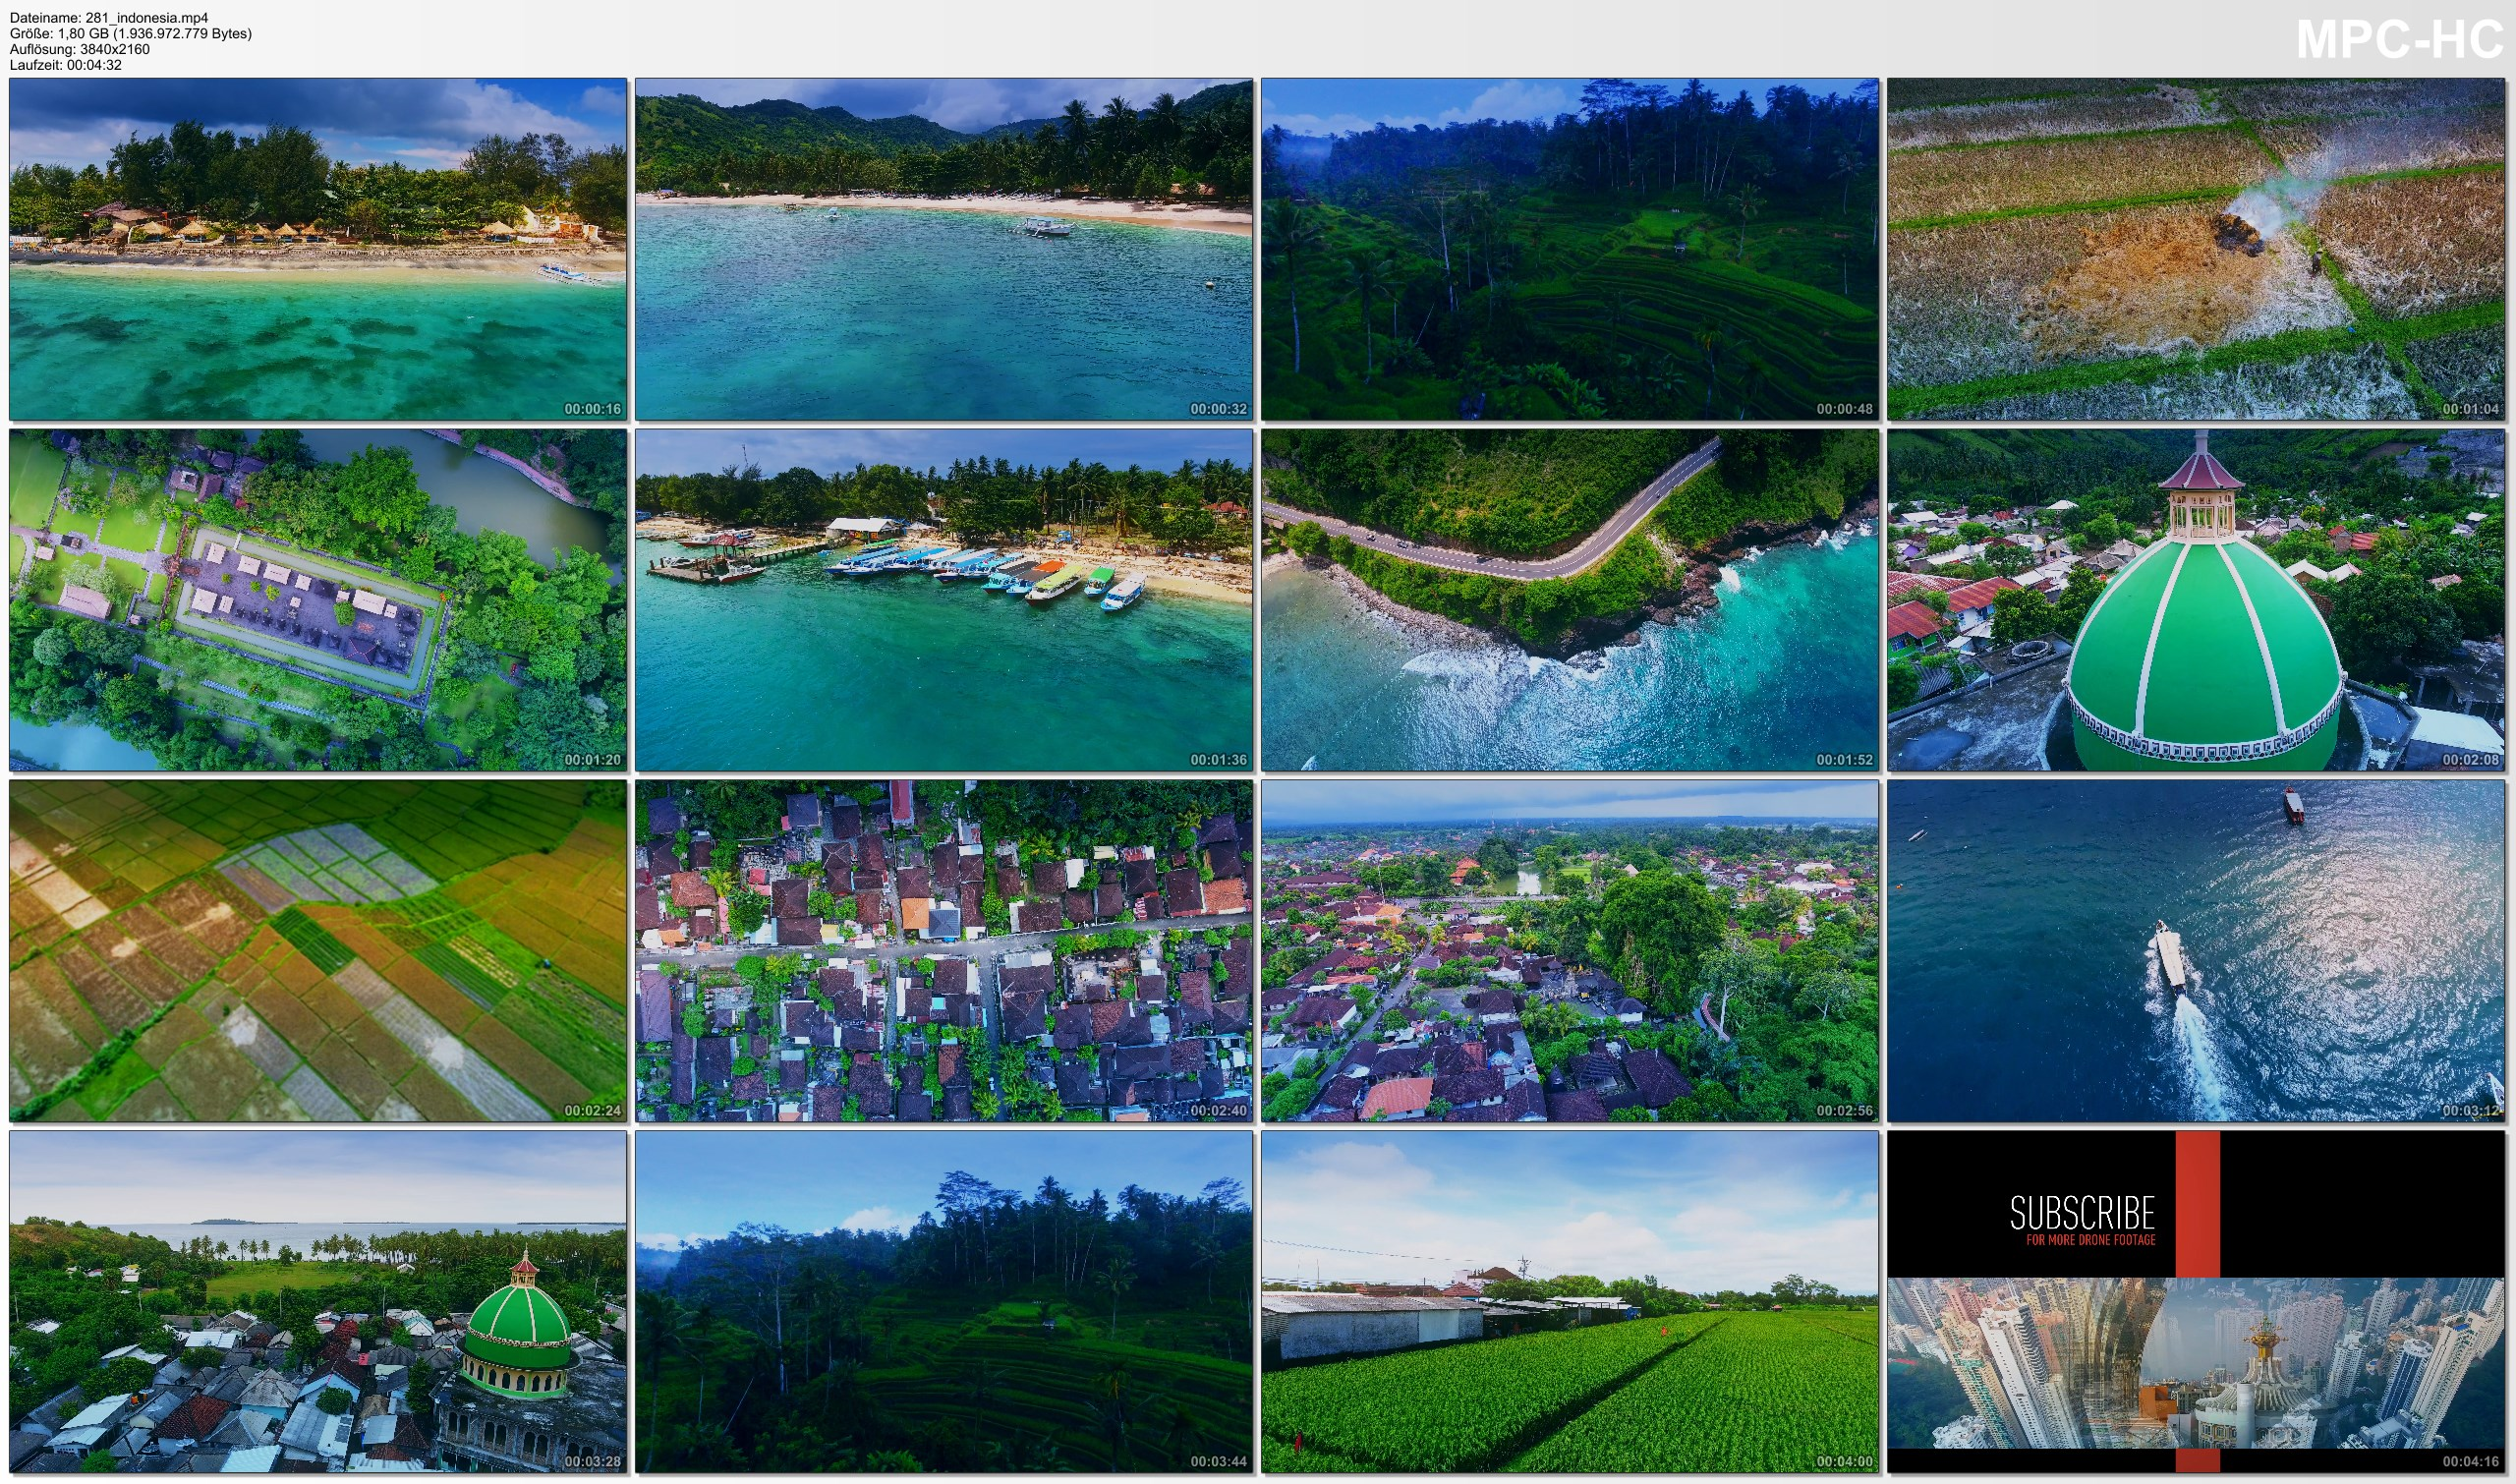 Drone Pictures from Video 【4K】Drone Footage | Wonderful Indonesia - Bali, Lombok & More 2019 ..:: Cinematic Aerial Film